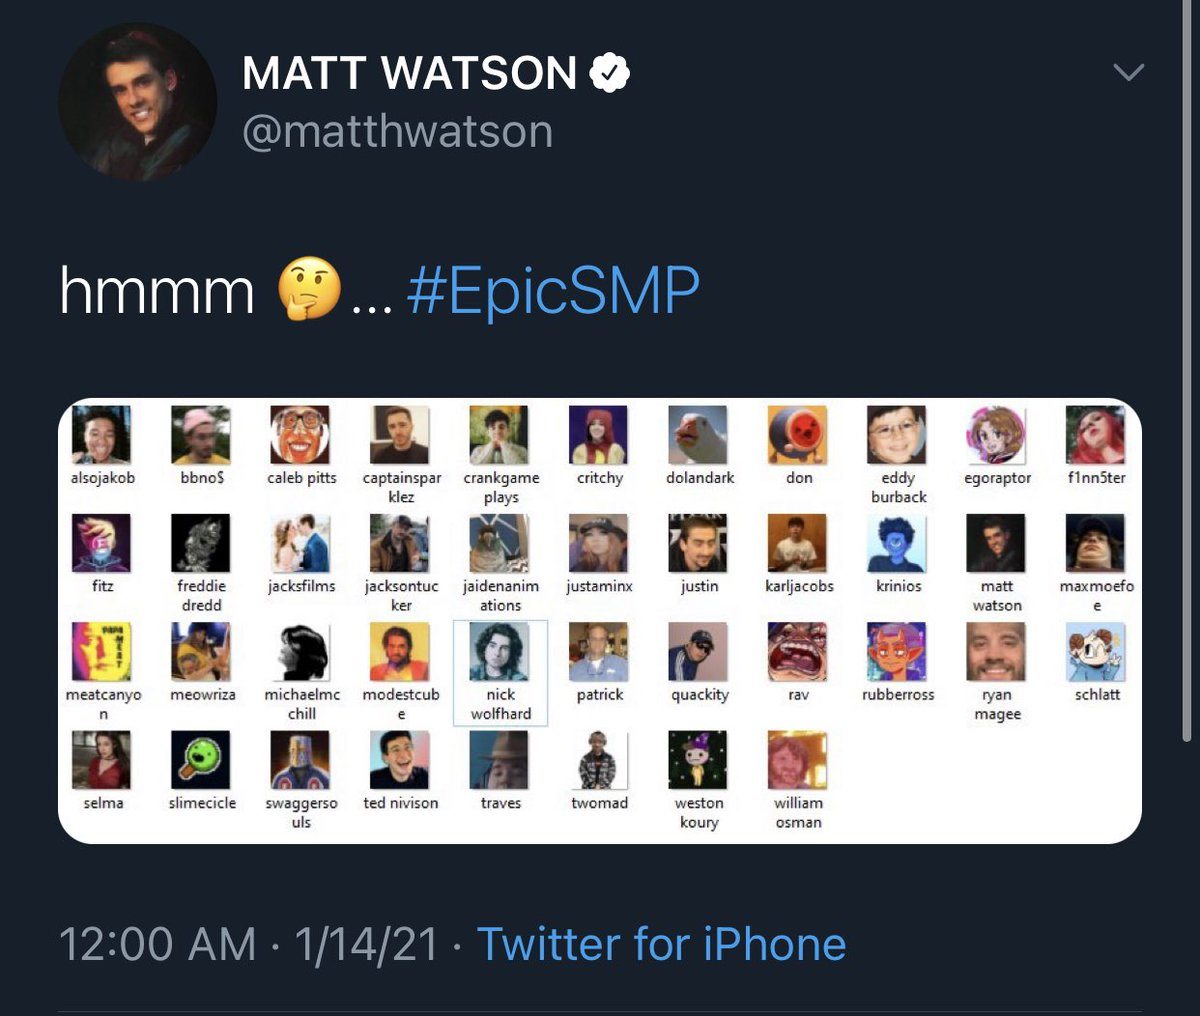 🚨 Finn Wolfhard has joined YouTuber Matt Watson's (from SuperMega) Minecraft SMP server, Epic SMP #EpicSMP   The first stream is this Saturday, Jan 16 at 1 PM PST / 4 PM EST. No word on if Finn will participate this weekend: